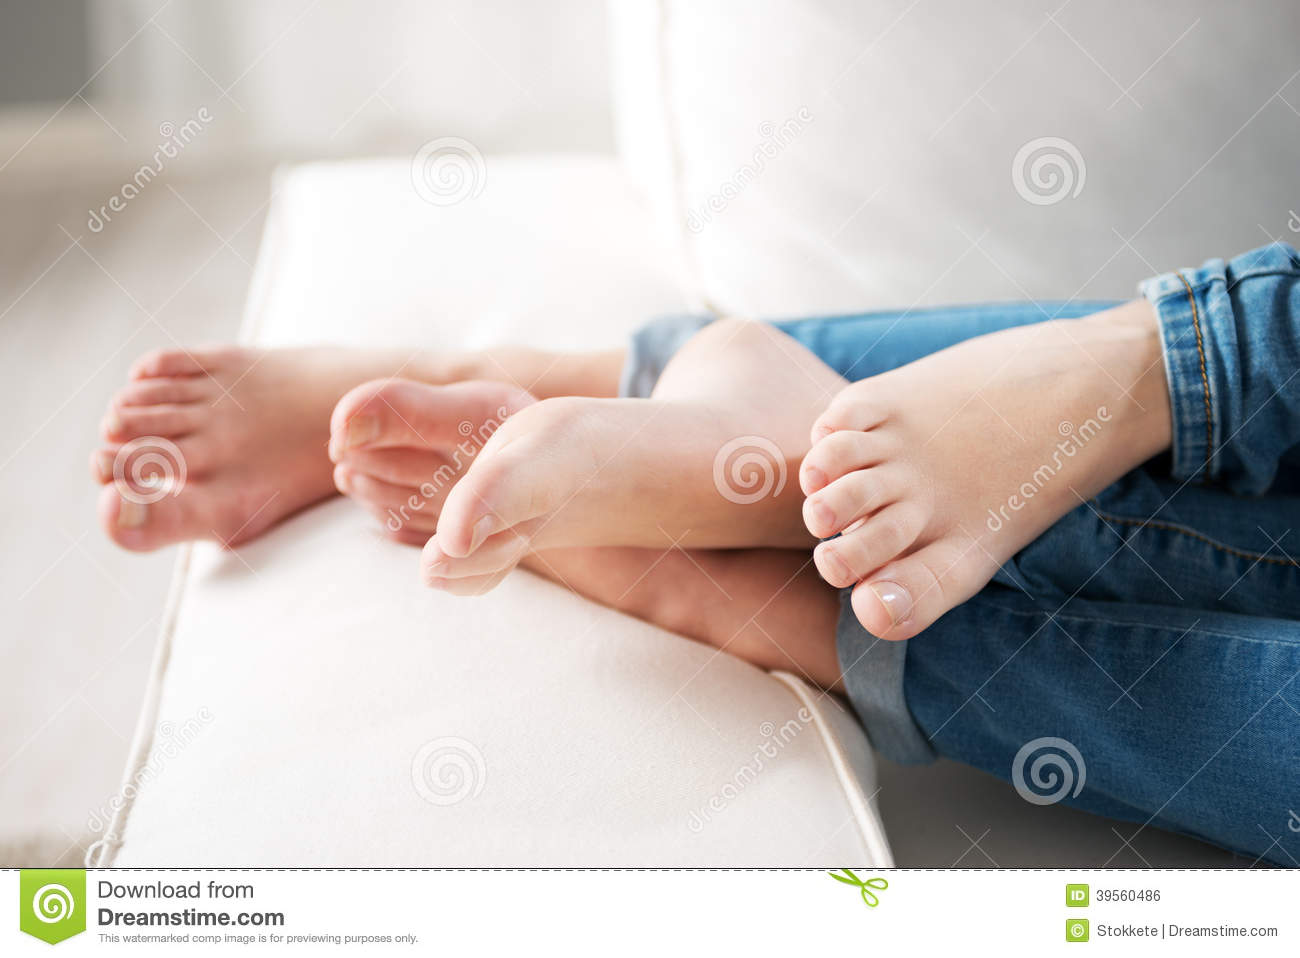 Loving Couple Feet Stock Photo Image 39560486 : loving couple feet young hugging sofa close up 39560486 from www.dreamstime.com size 1300 x 958 jpeg 85kB